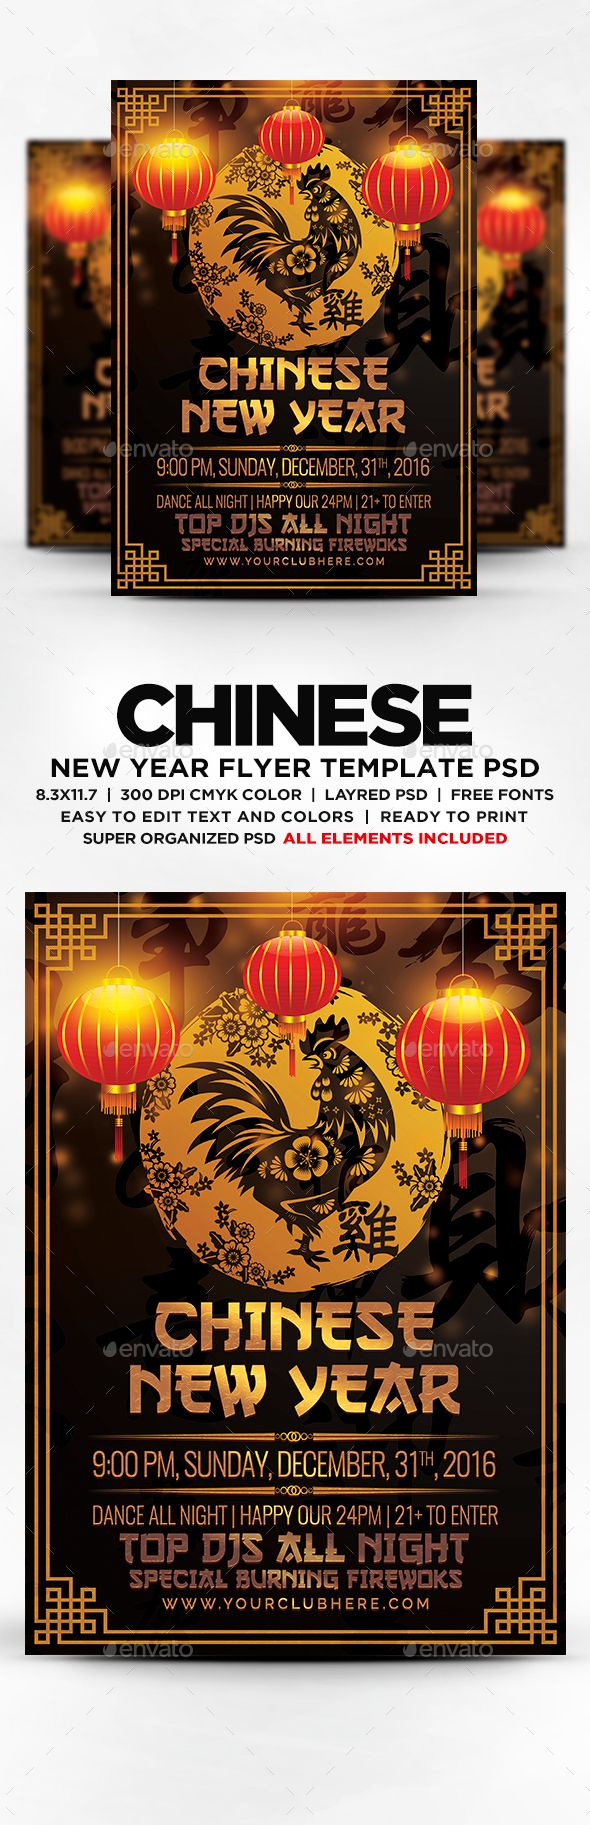 Chinese New Year Flyer - Flyers Print Templates Download here: https://graphicriver.net/item/chinese-new-year-flyer/18862085?ref=alena994